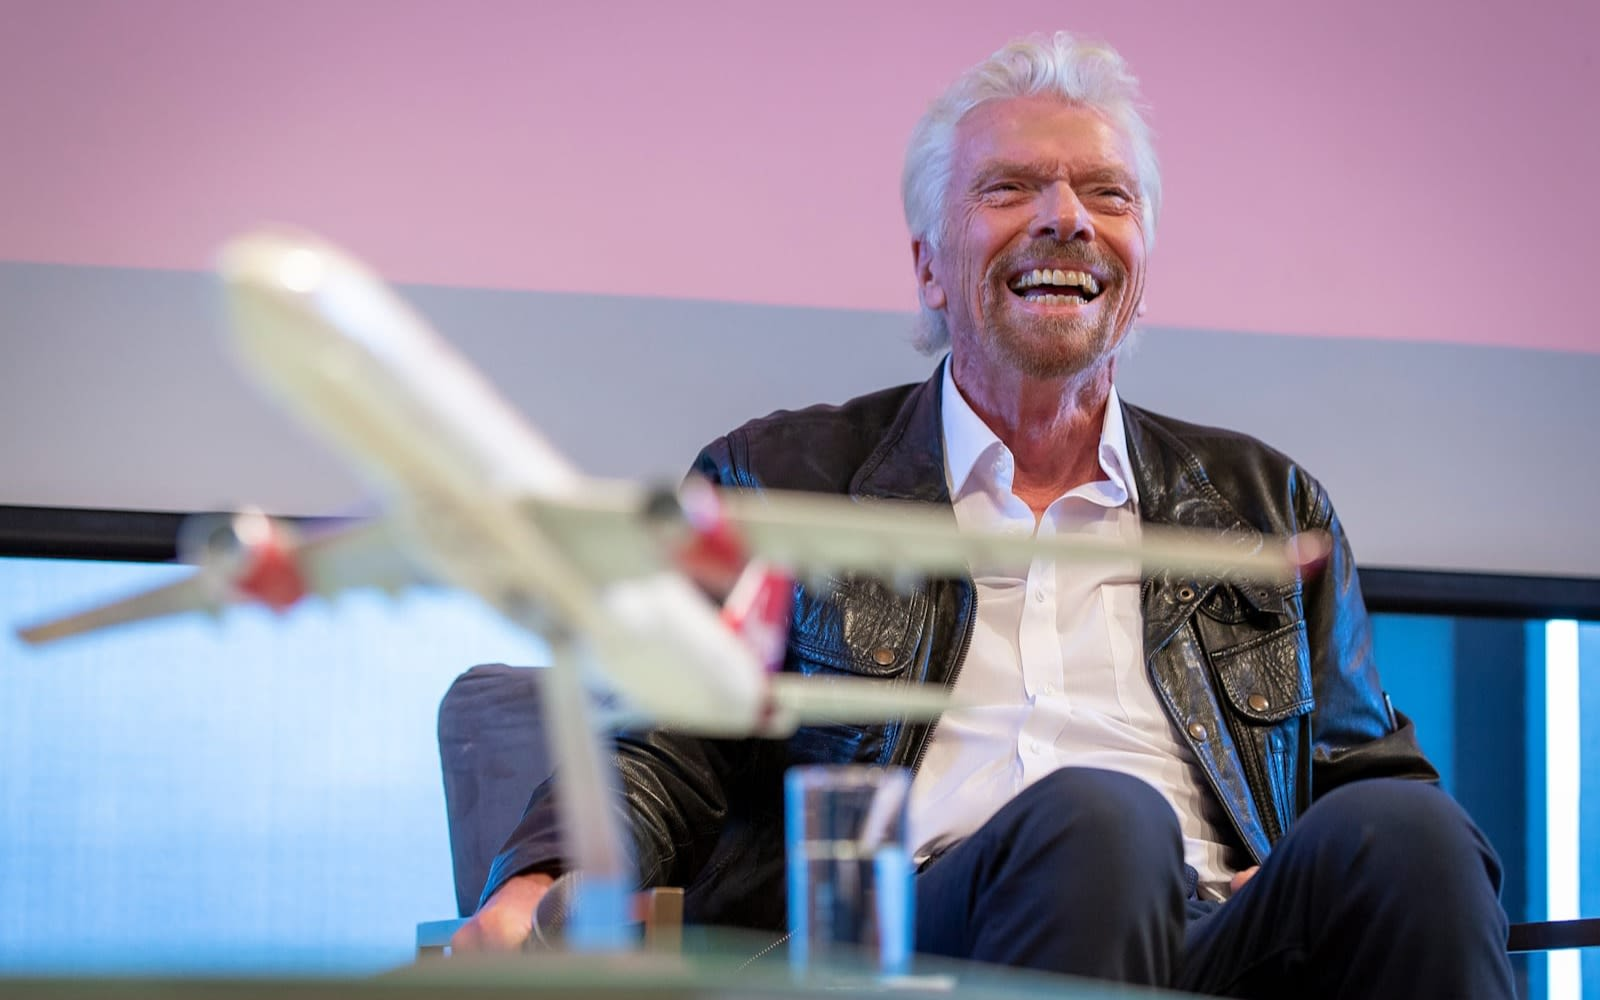 Richard Branson smiling with a model aeroplane in the foreground